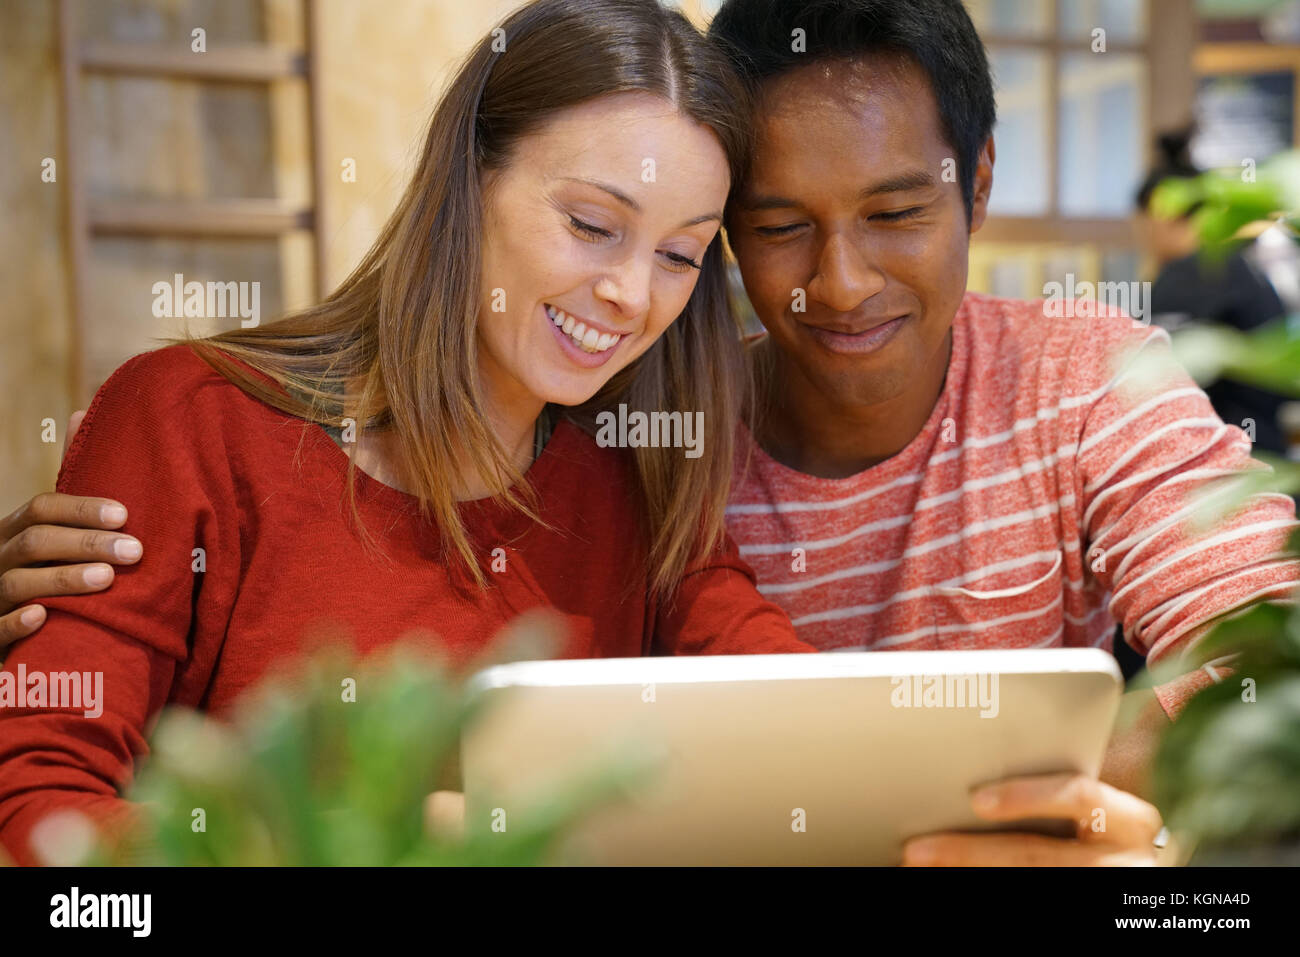 Couple in restaurant connected on internet with digital tablet - Stock Image